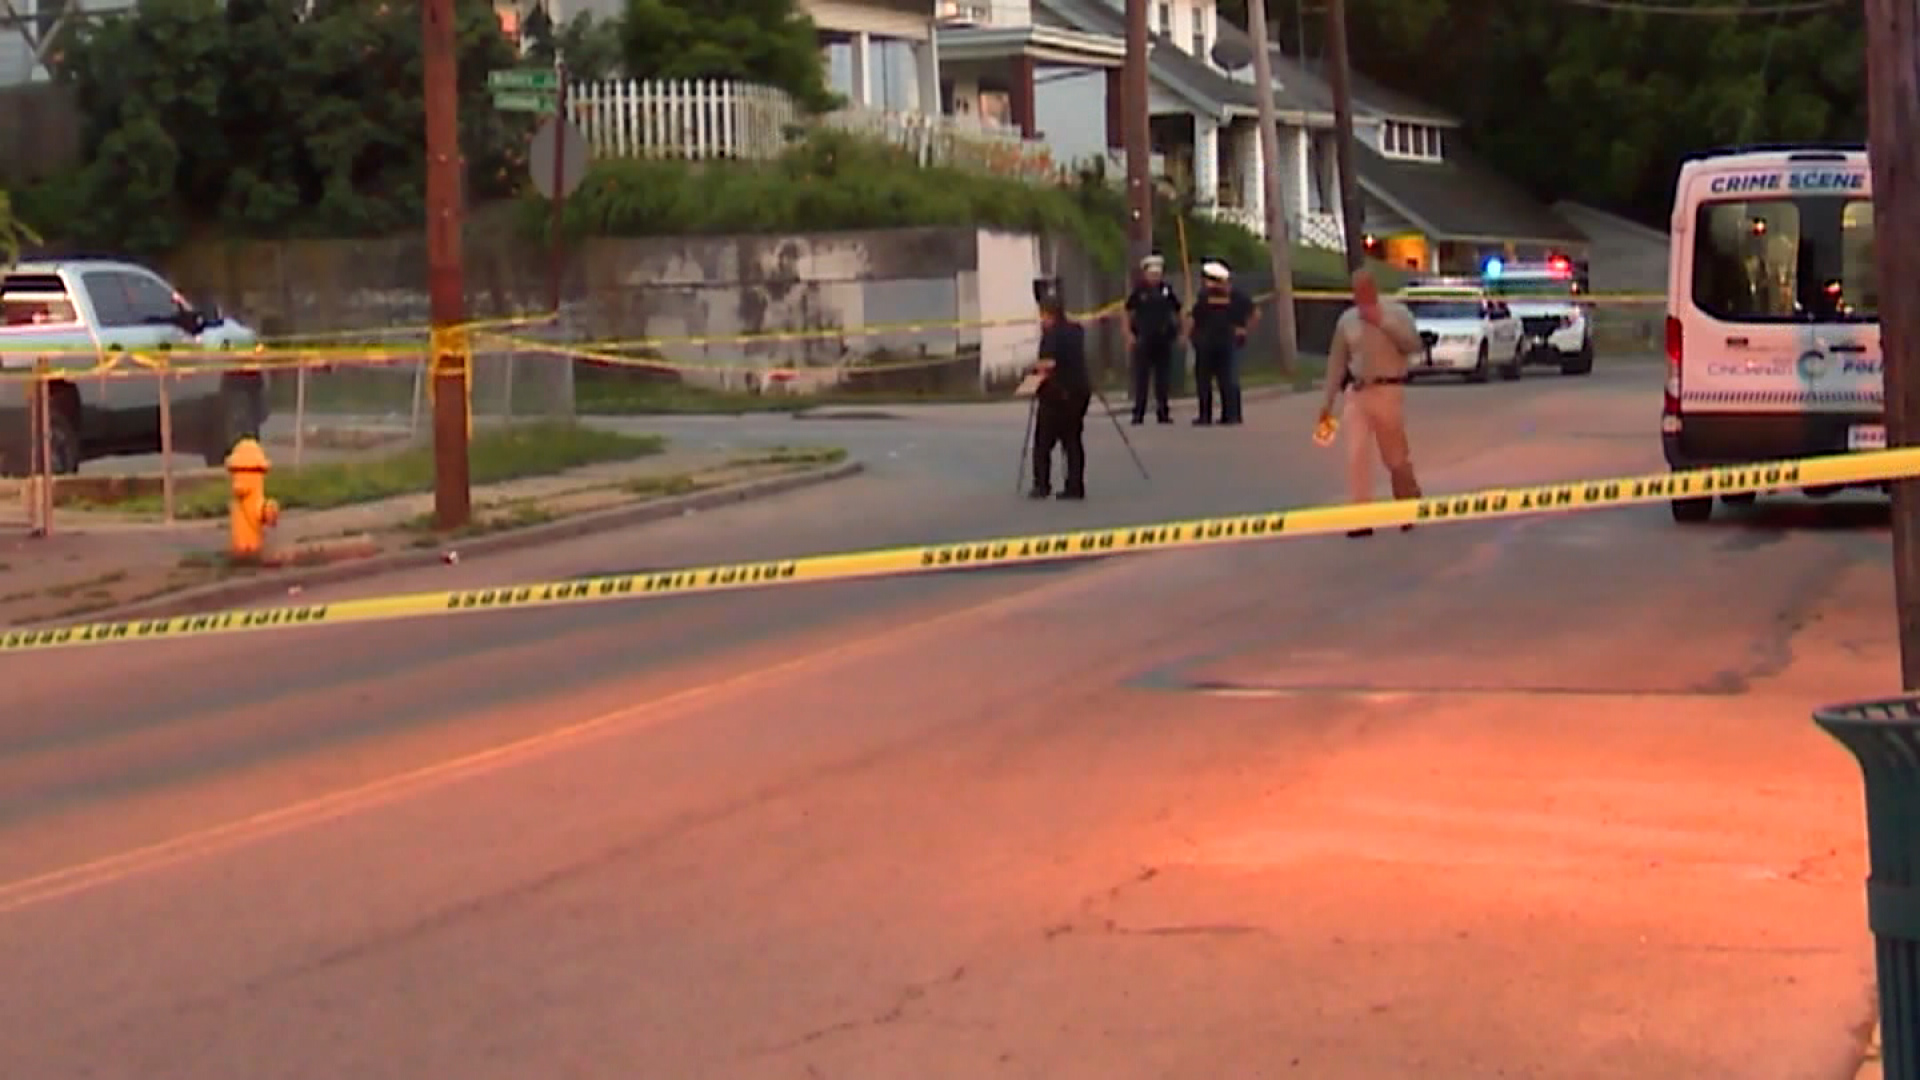 8-year-old boy in medically induced coma following shooting, police say